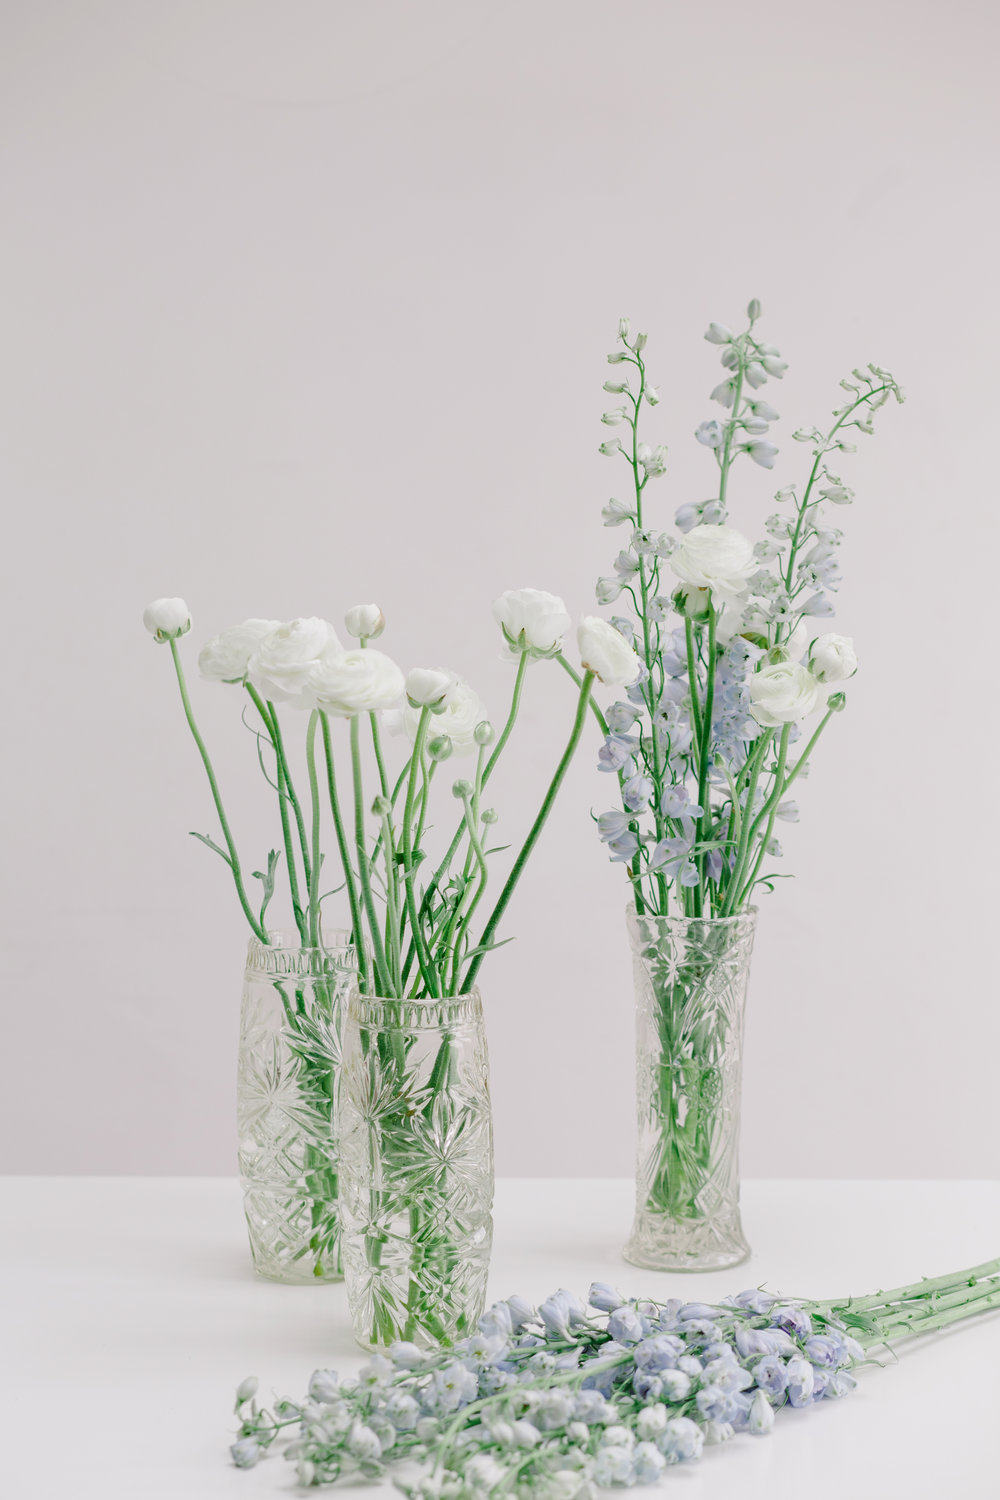 Cut Glass Vases: From £1.00